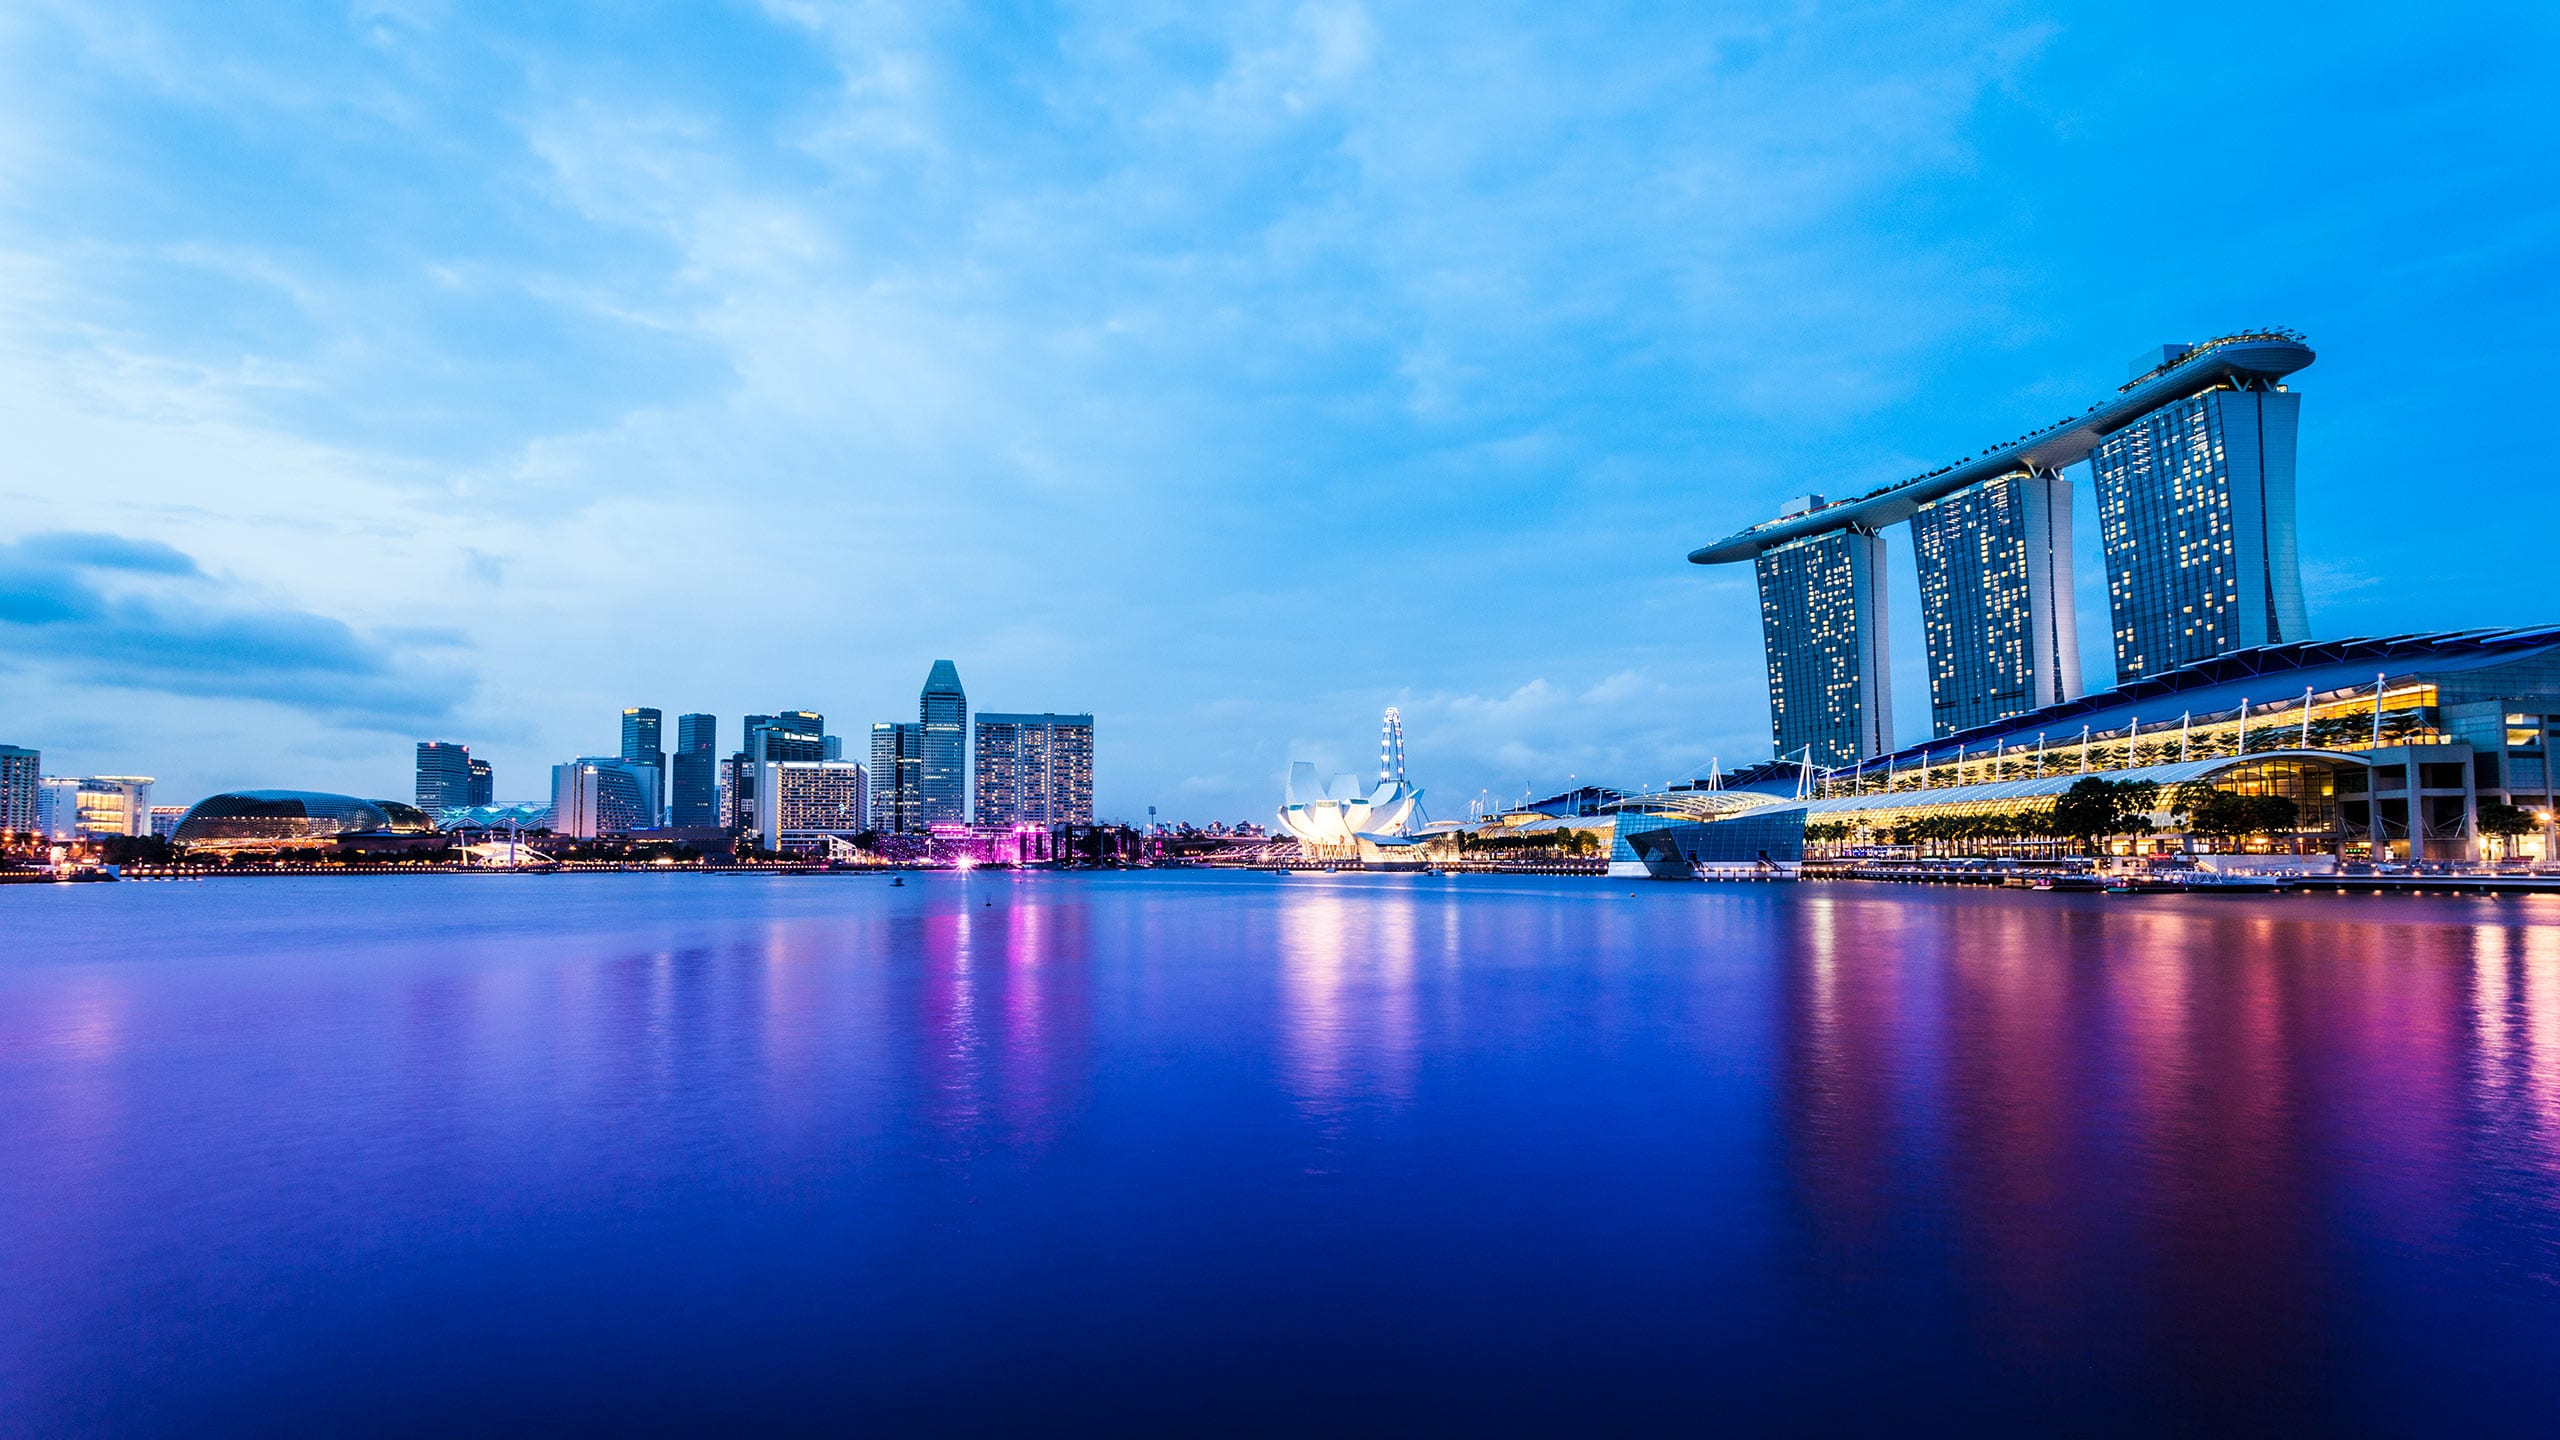 Singapore Marina Bay at Dusk